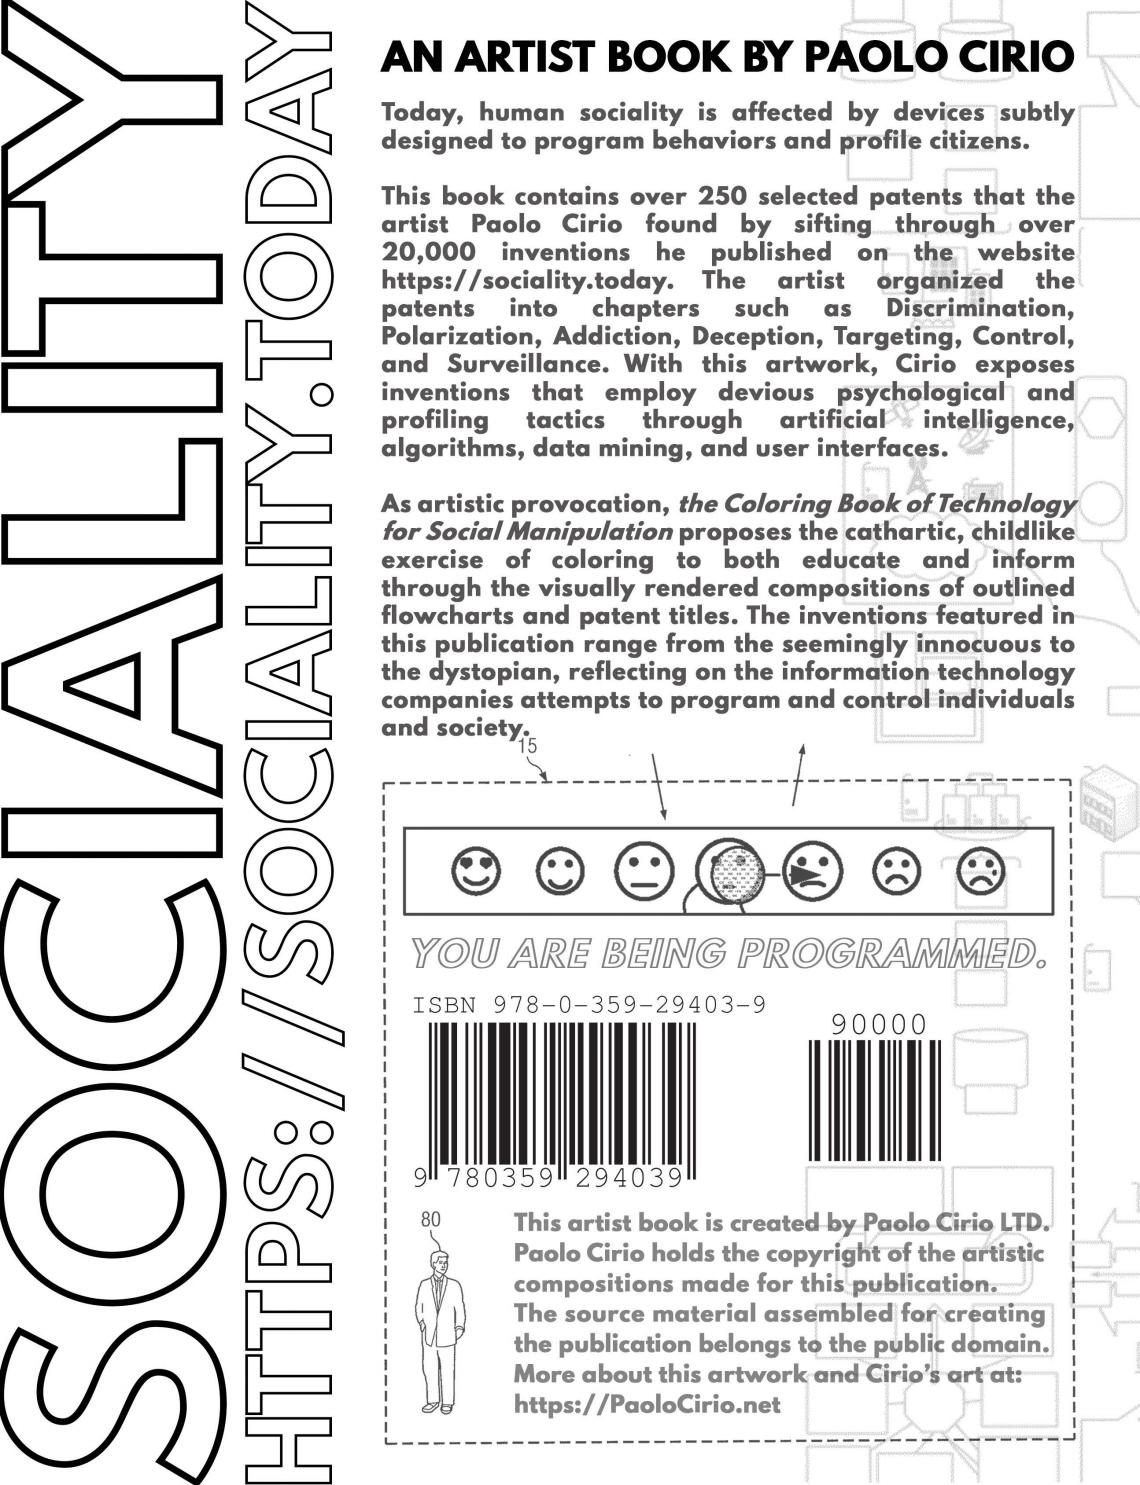 SOCIALITY, the Coloring Book of Technology for Social